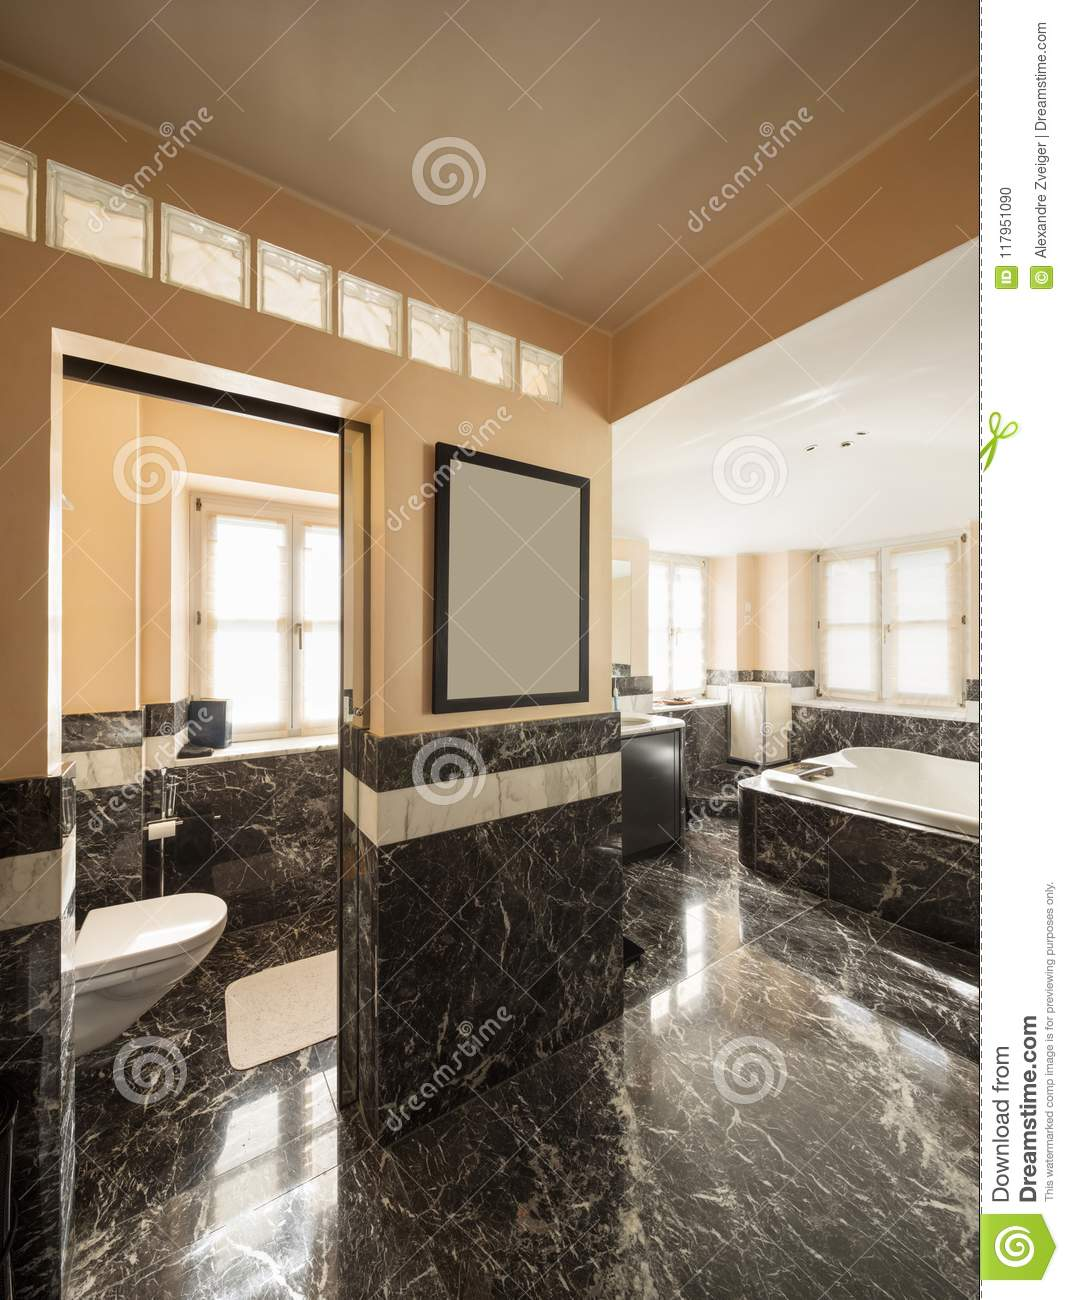 Bathroom With Black Marble Tiles And Empty Big Bathtub Stock Photo Image Of Copy Indoor 117951090